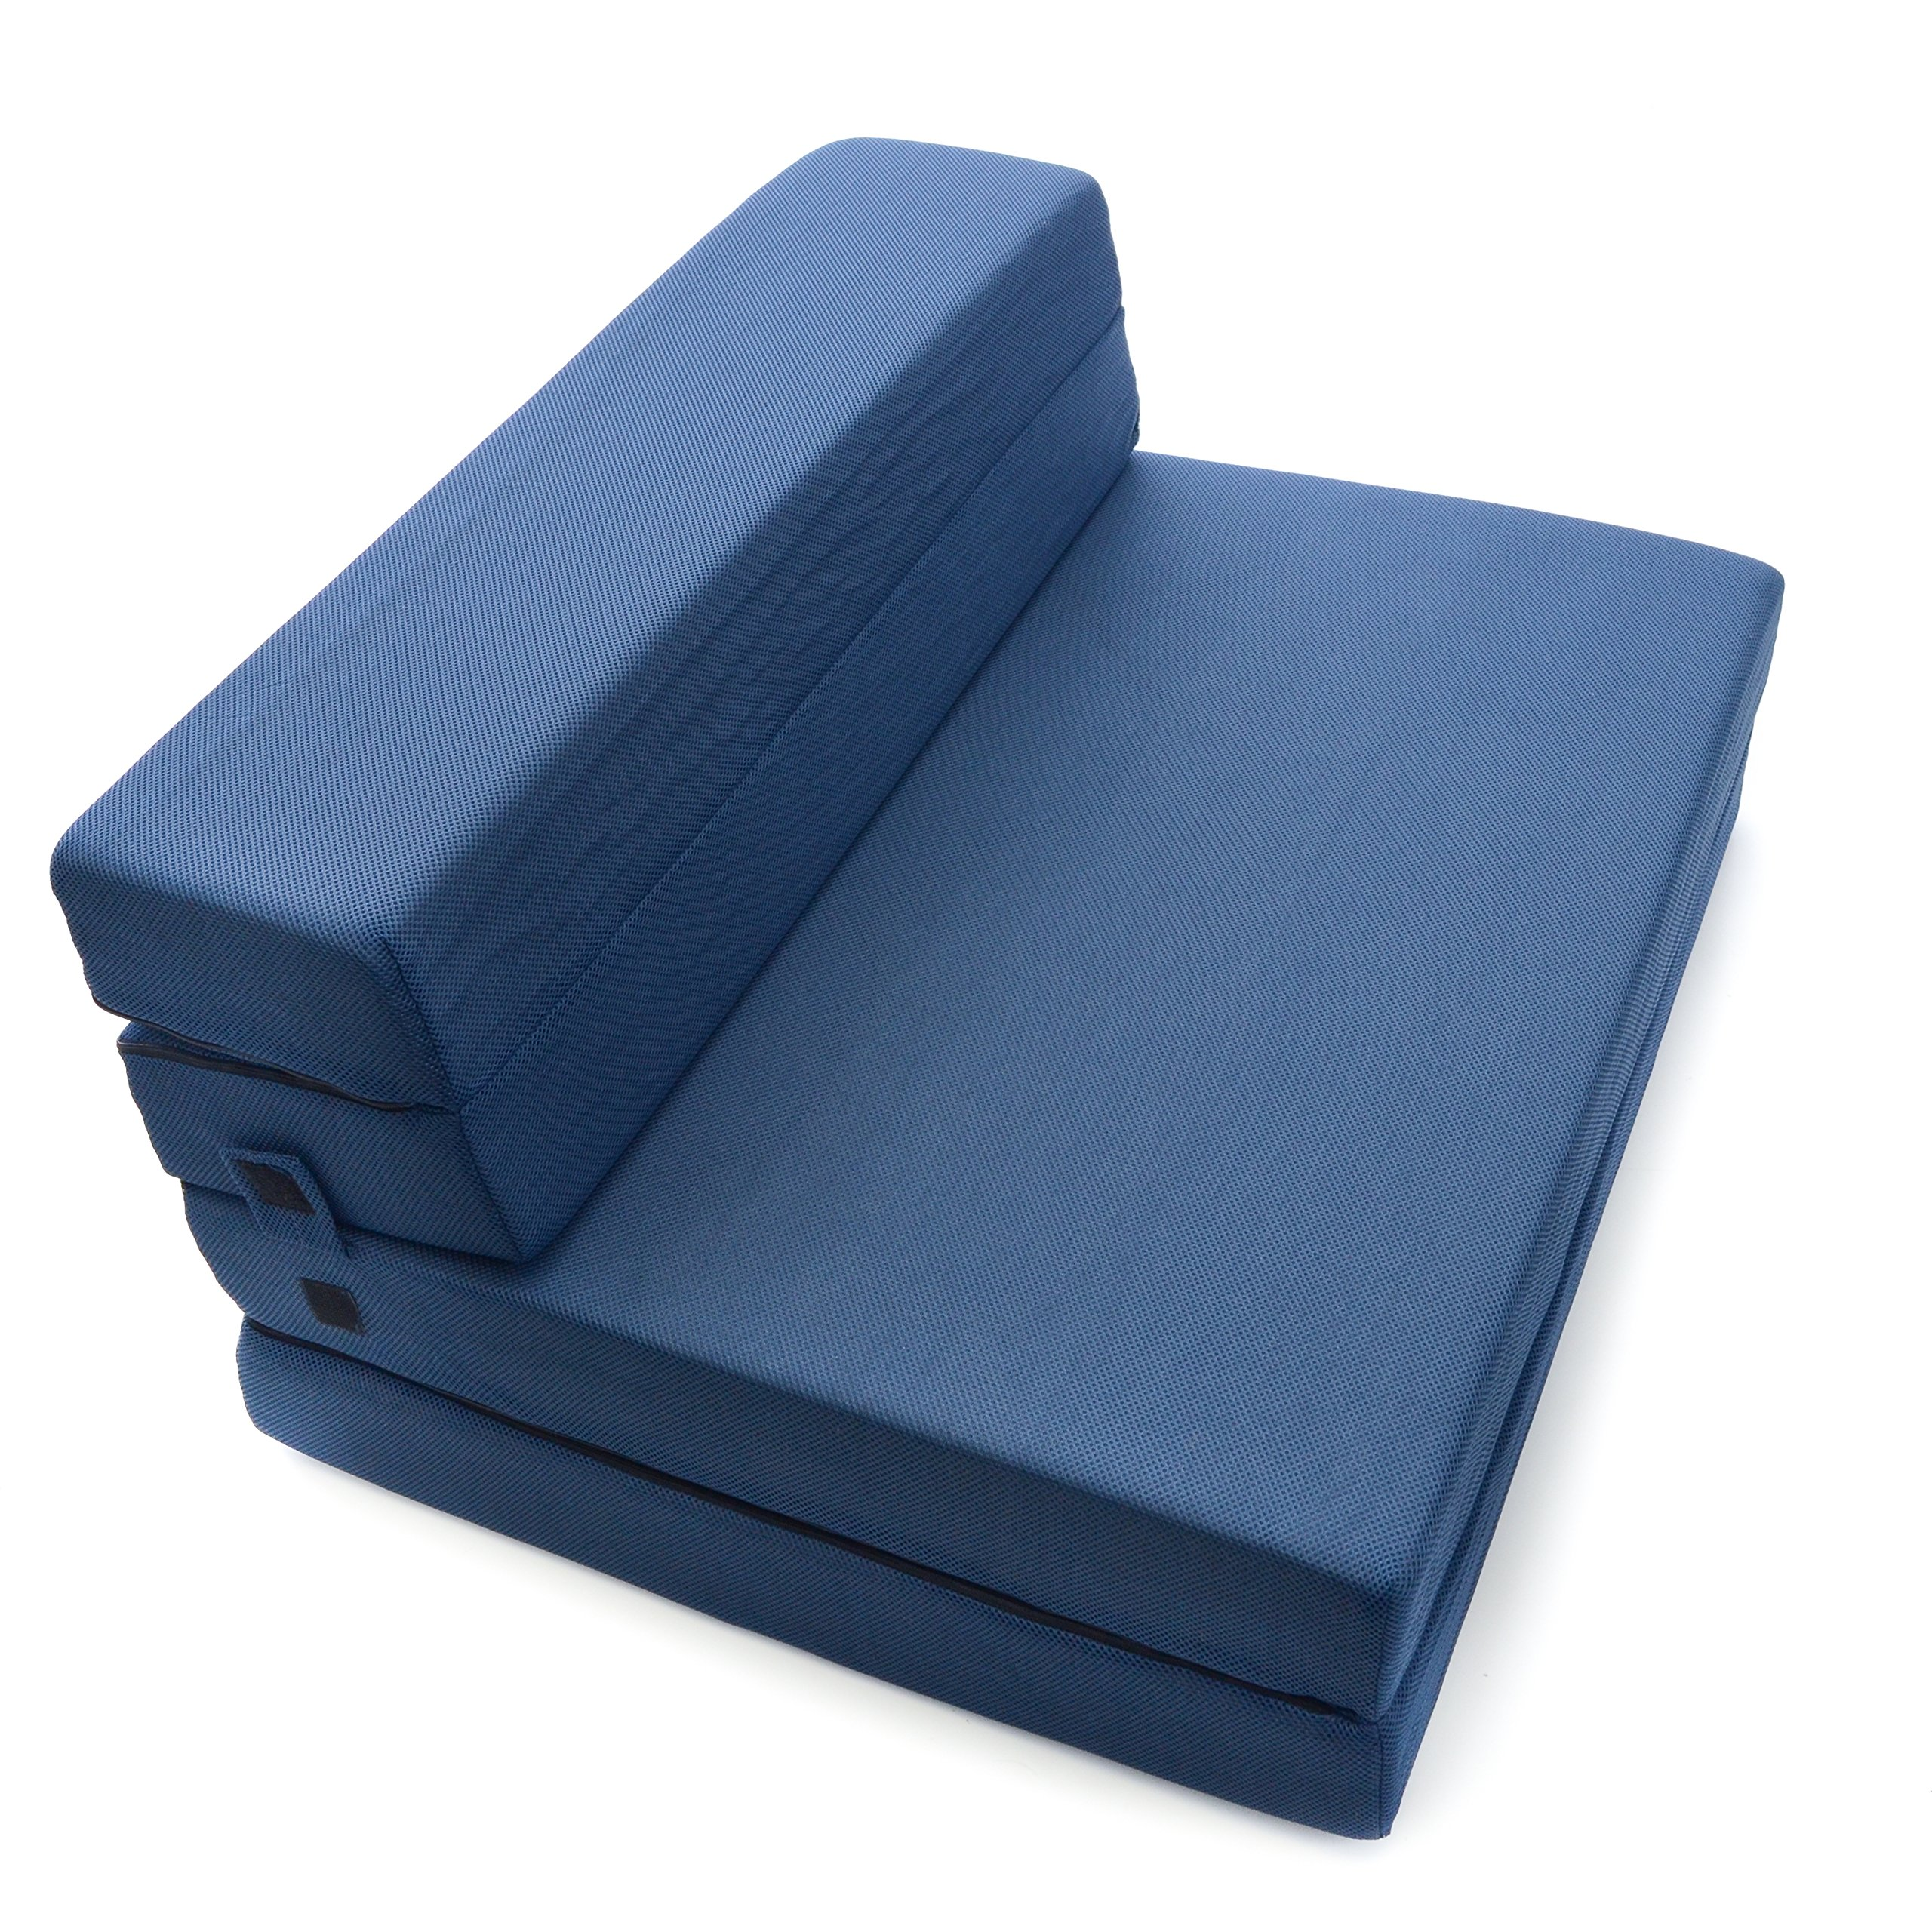 Milliard Tri Fold Foam Folding Mattress And Sofa Bed For